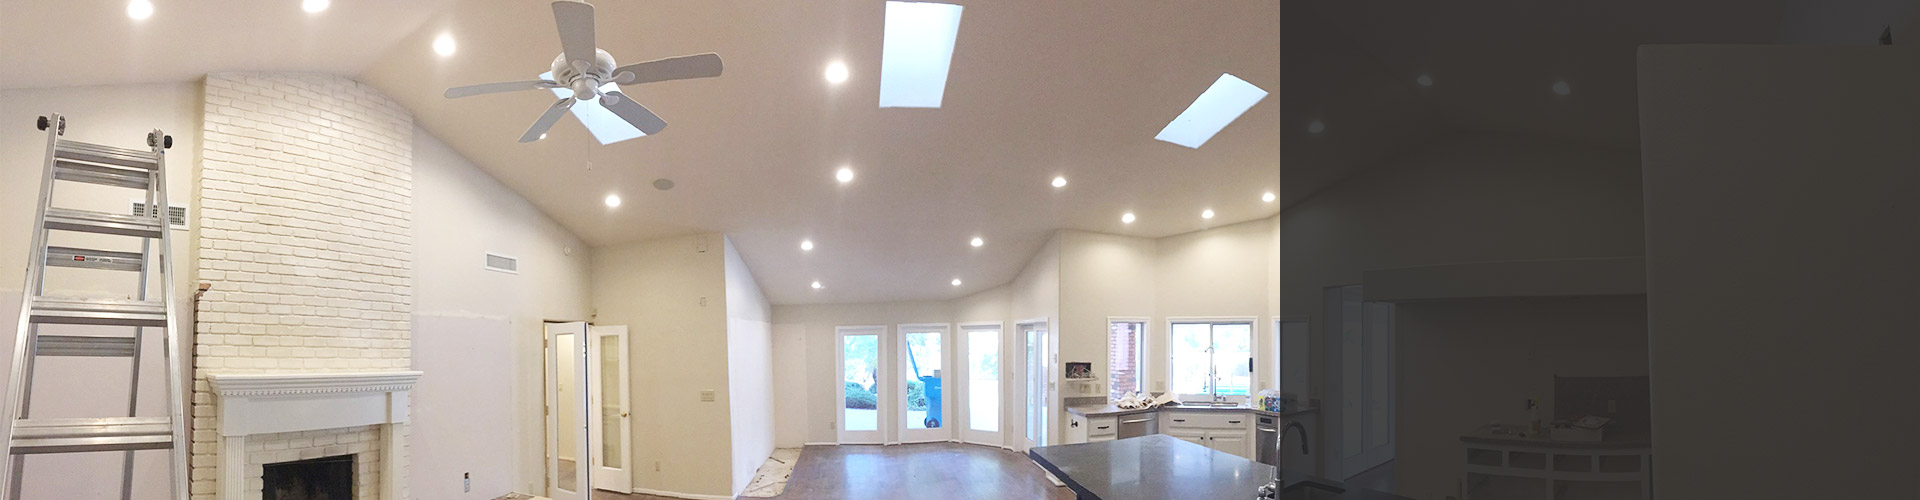 Led recessed lighting in peoria az led can lights we specialize in recessed lighting installs aloadofball Images